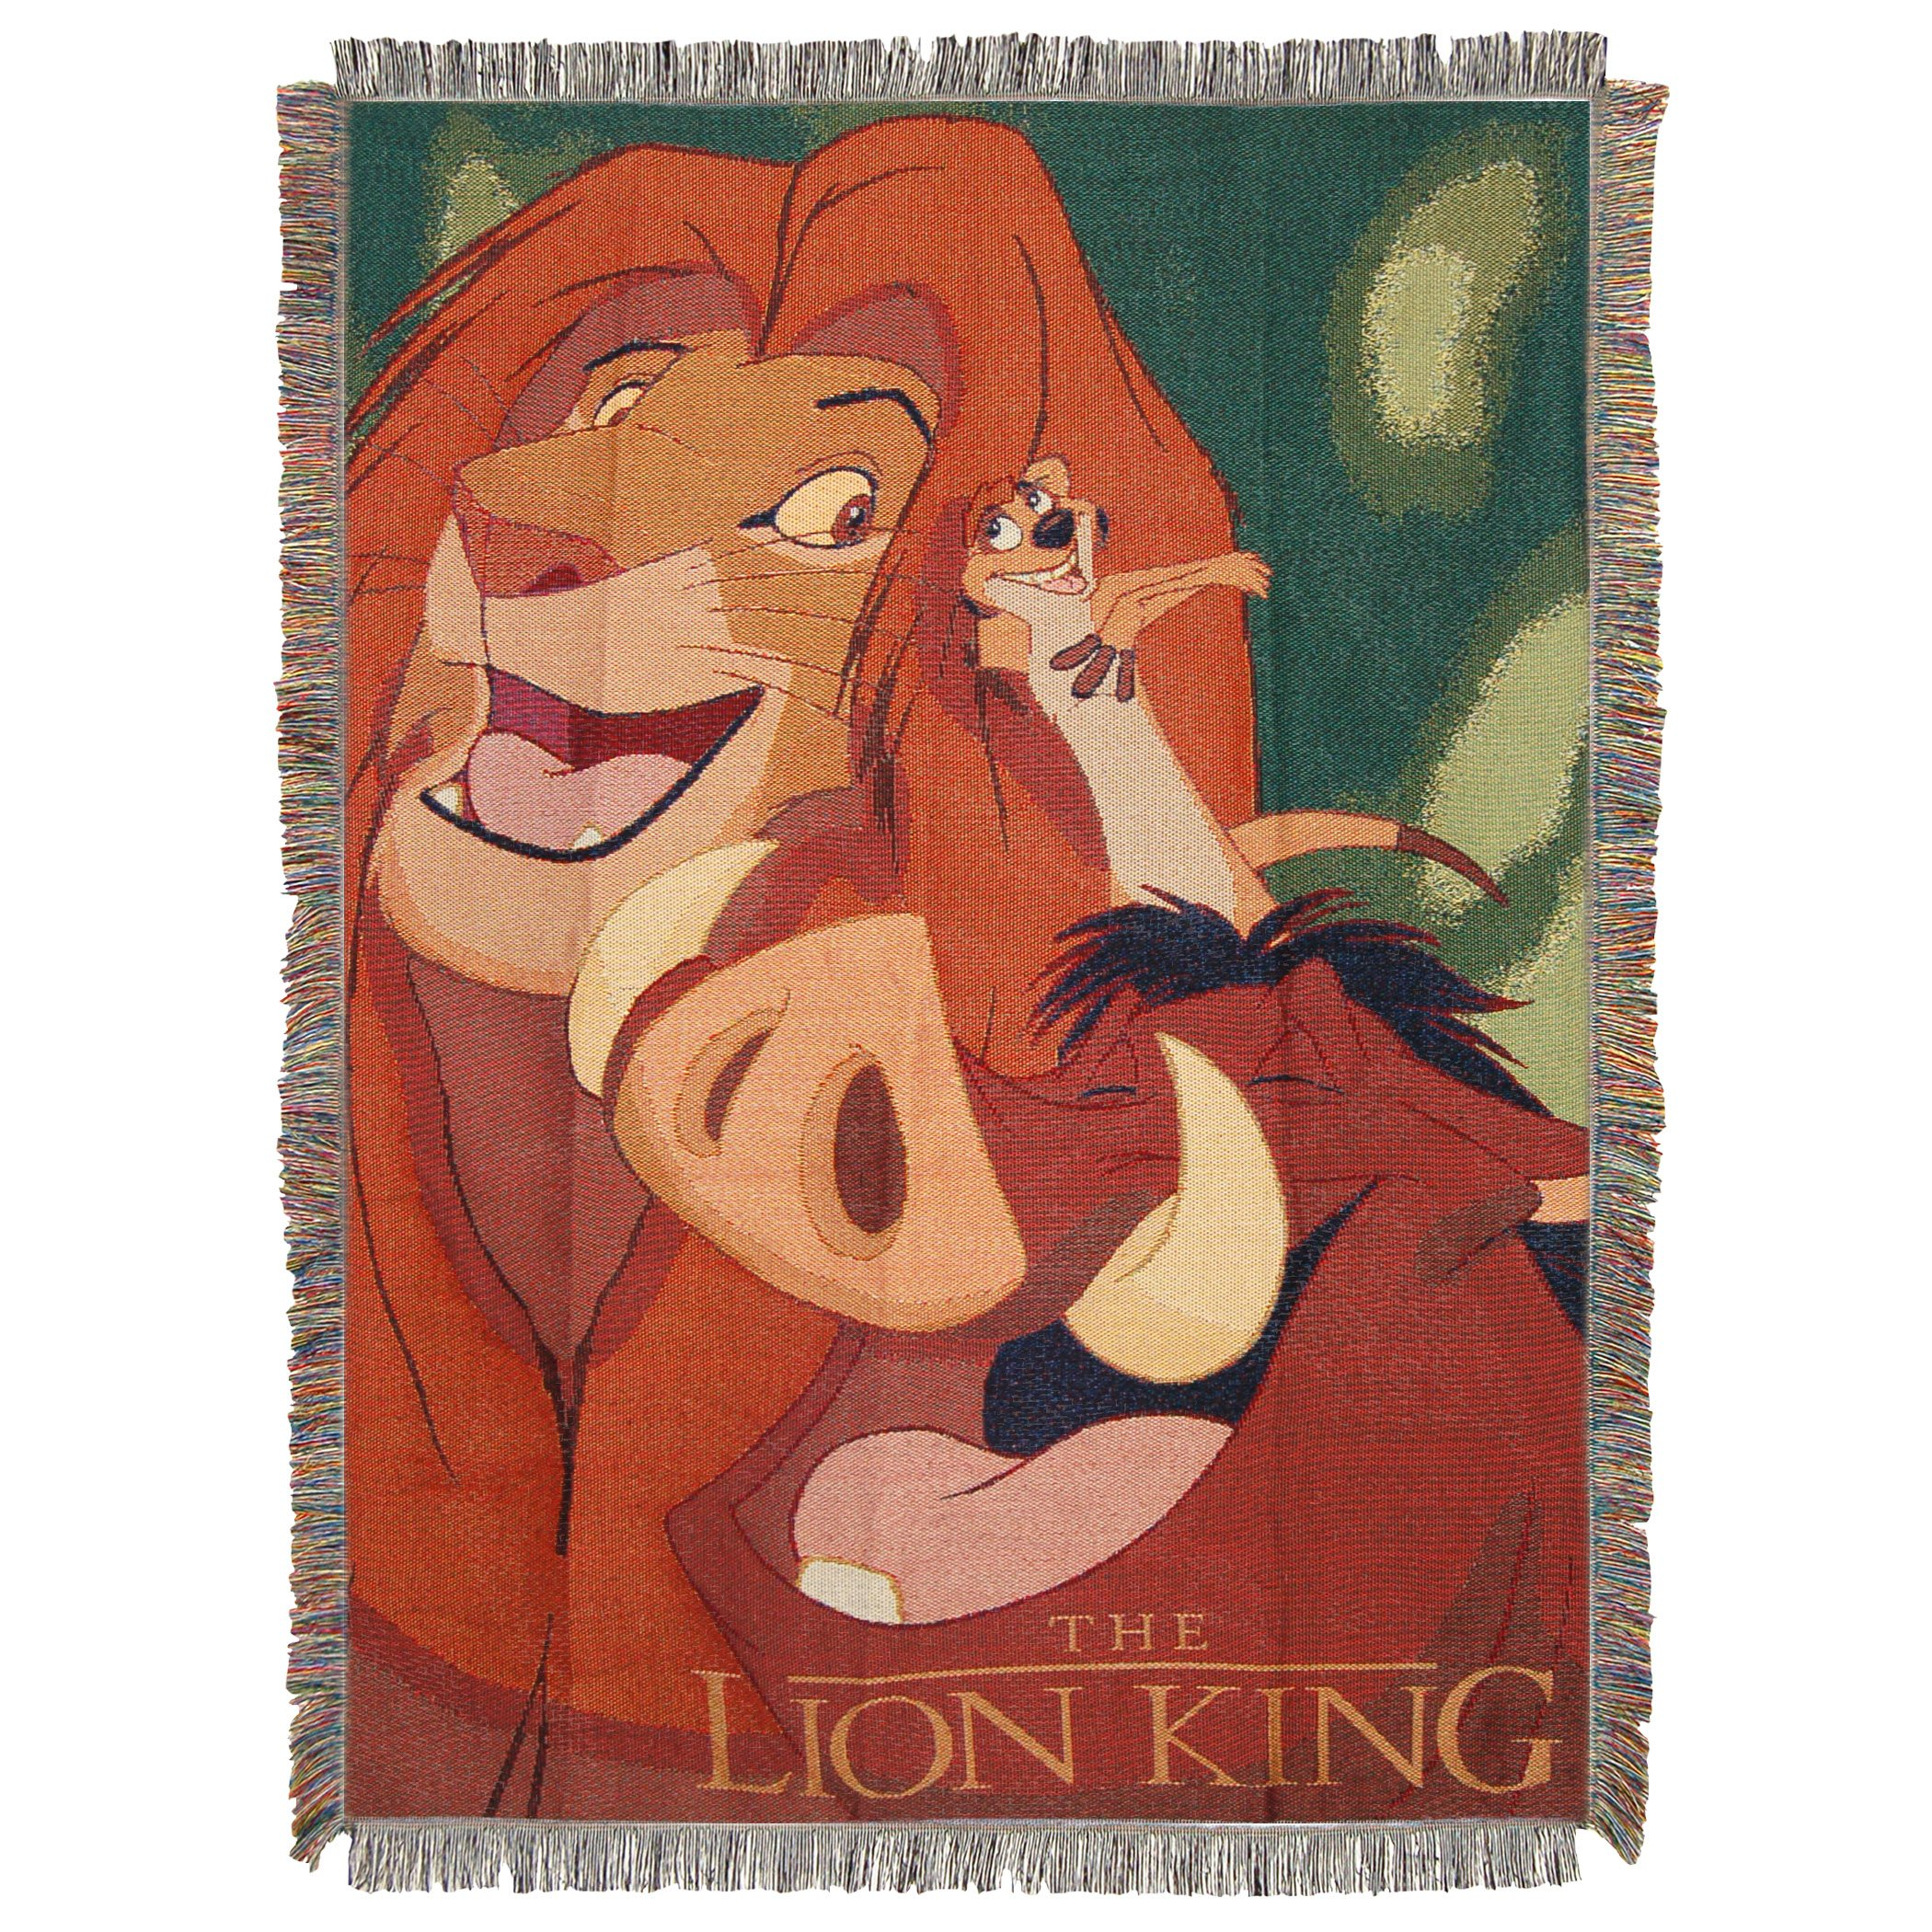 Disney The Lion King,Jungle Friends Woven Tapestry Throw Blanket, Multicolor